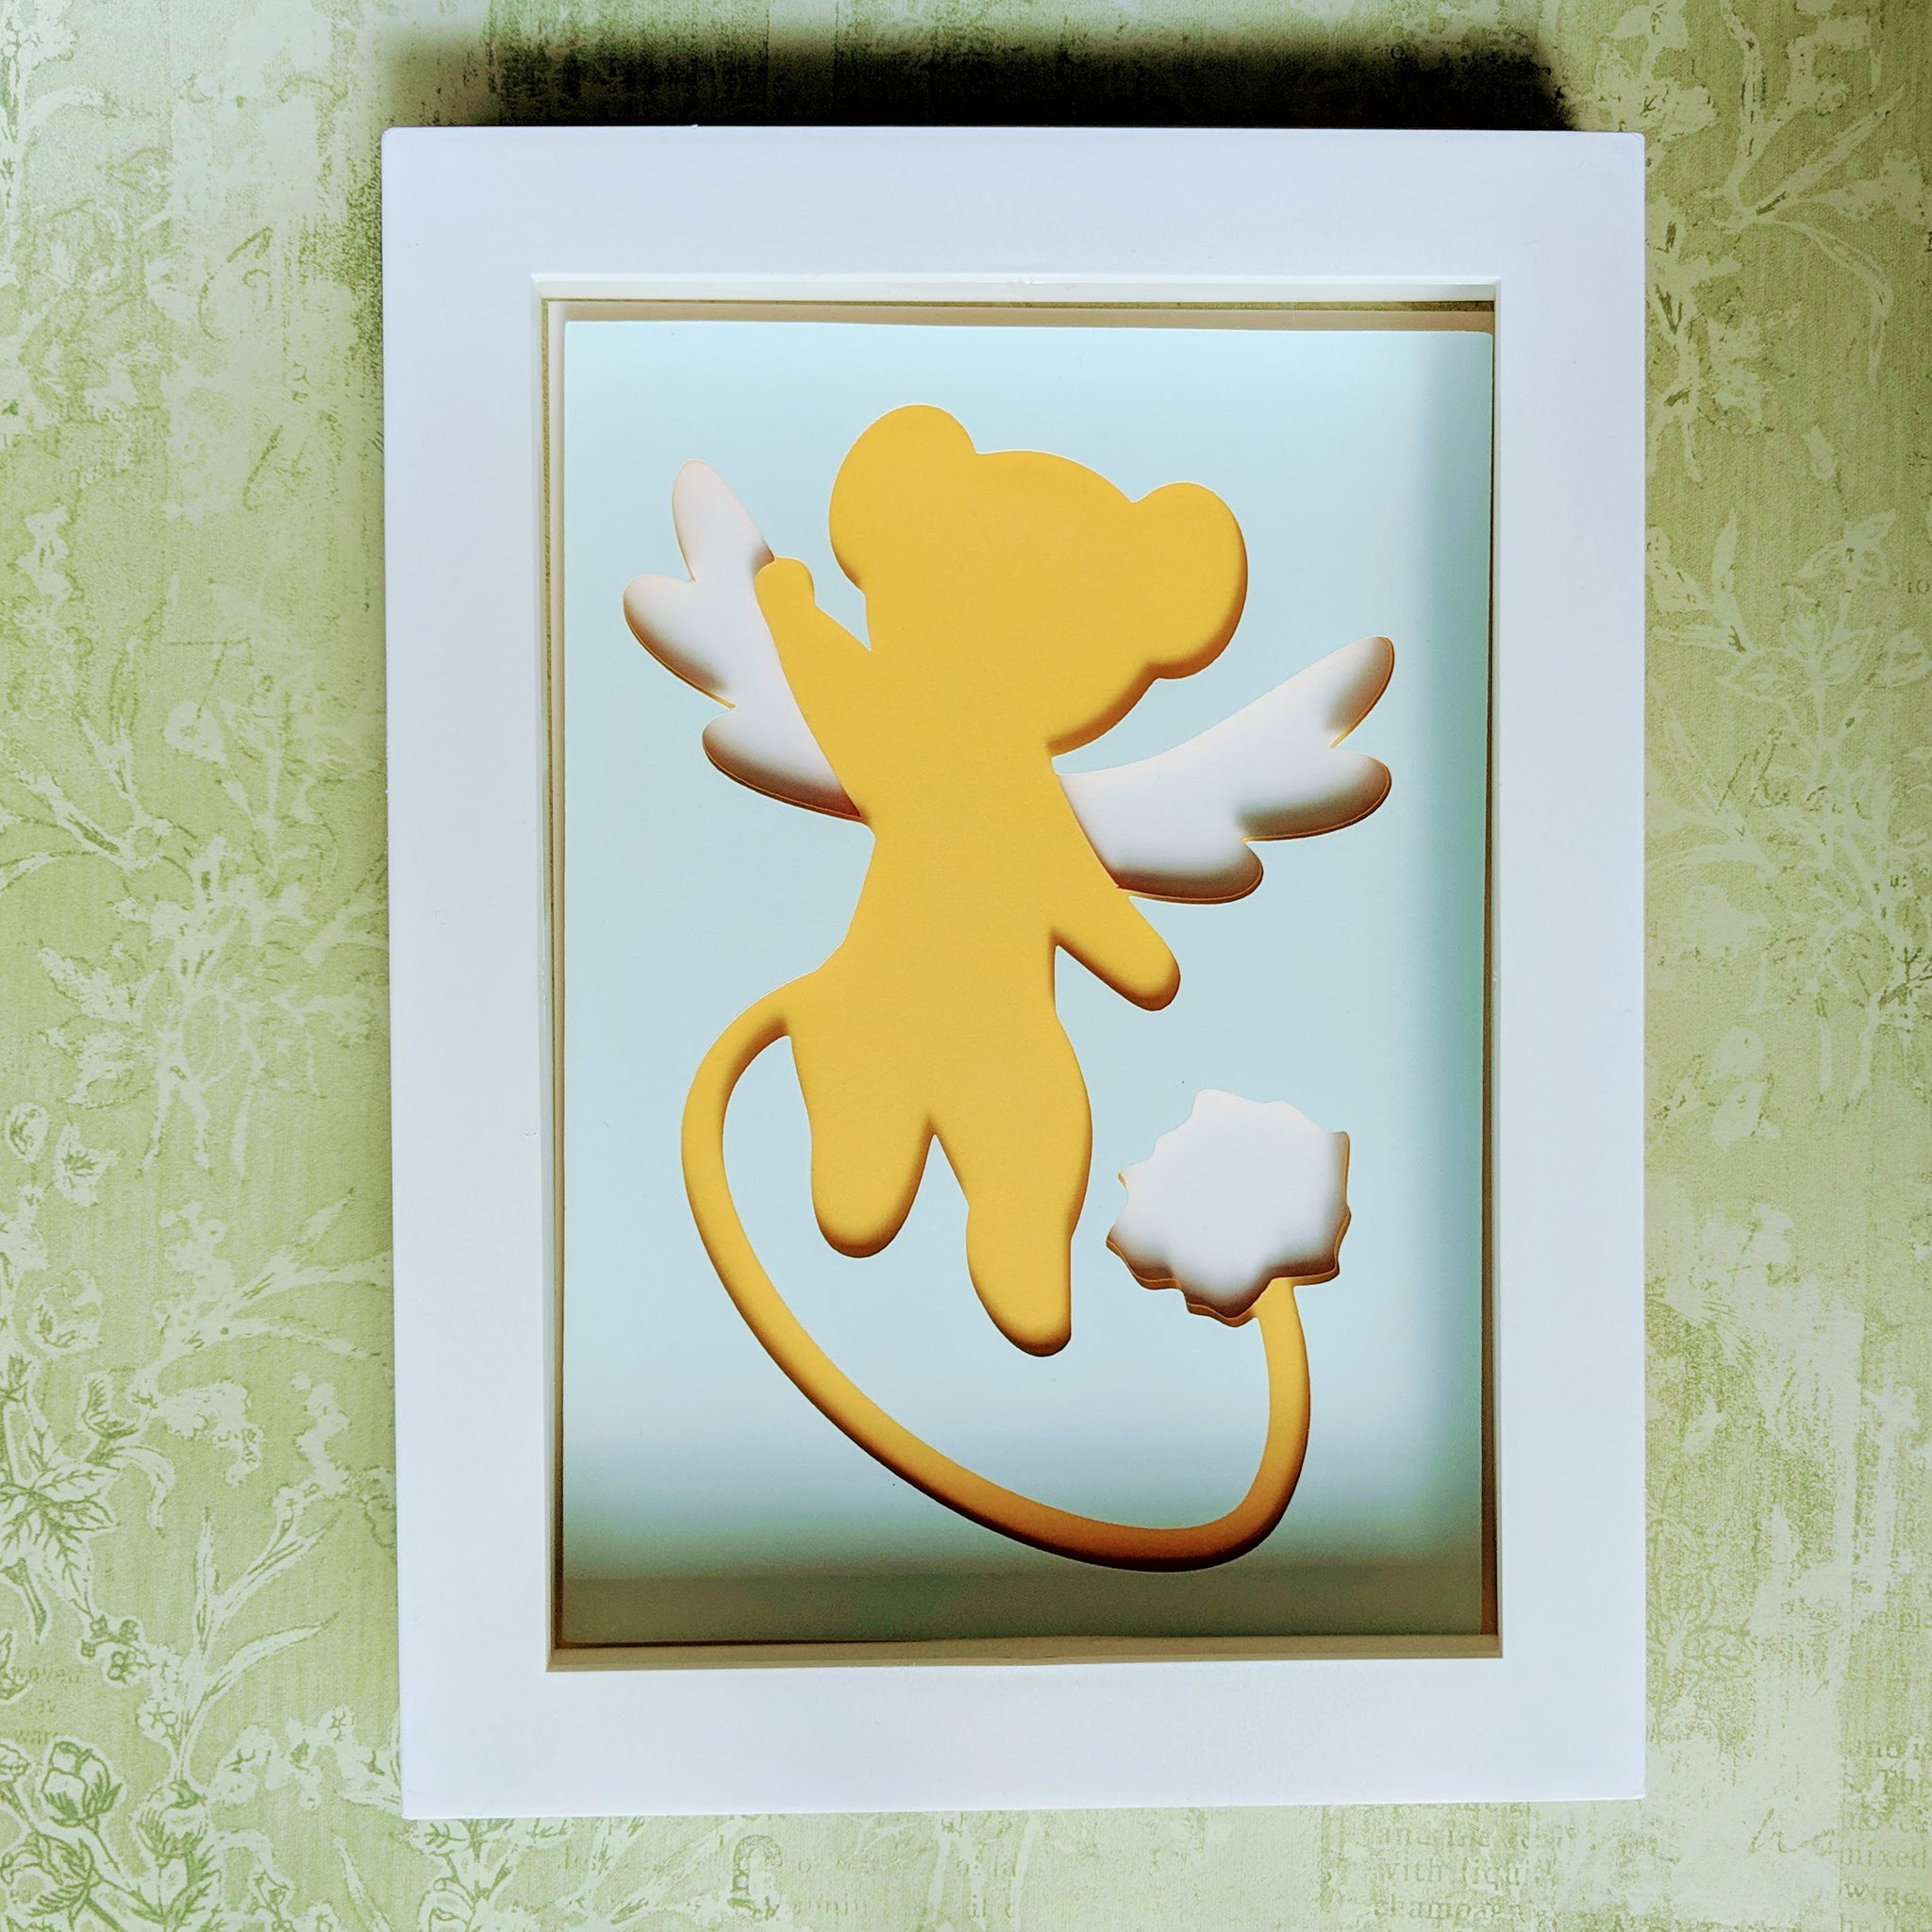 "Kero - 5""x7"" Shaowbox PaperCut"